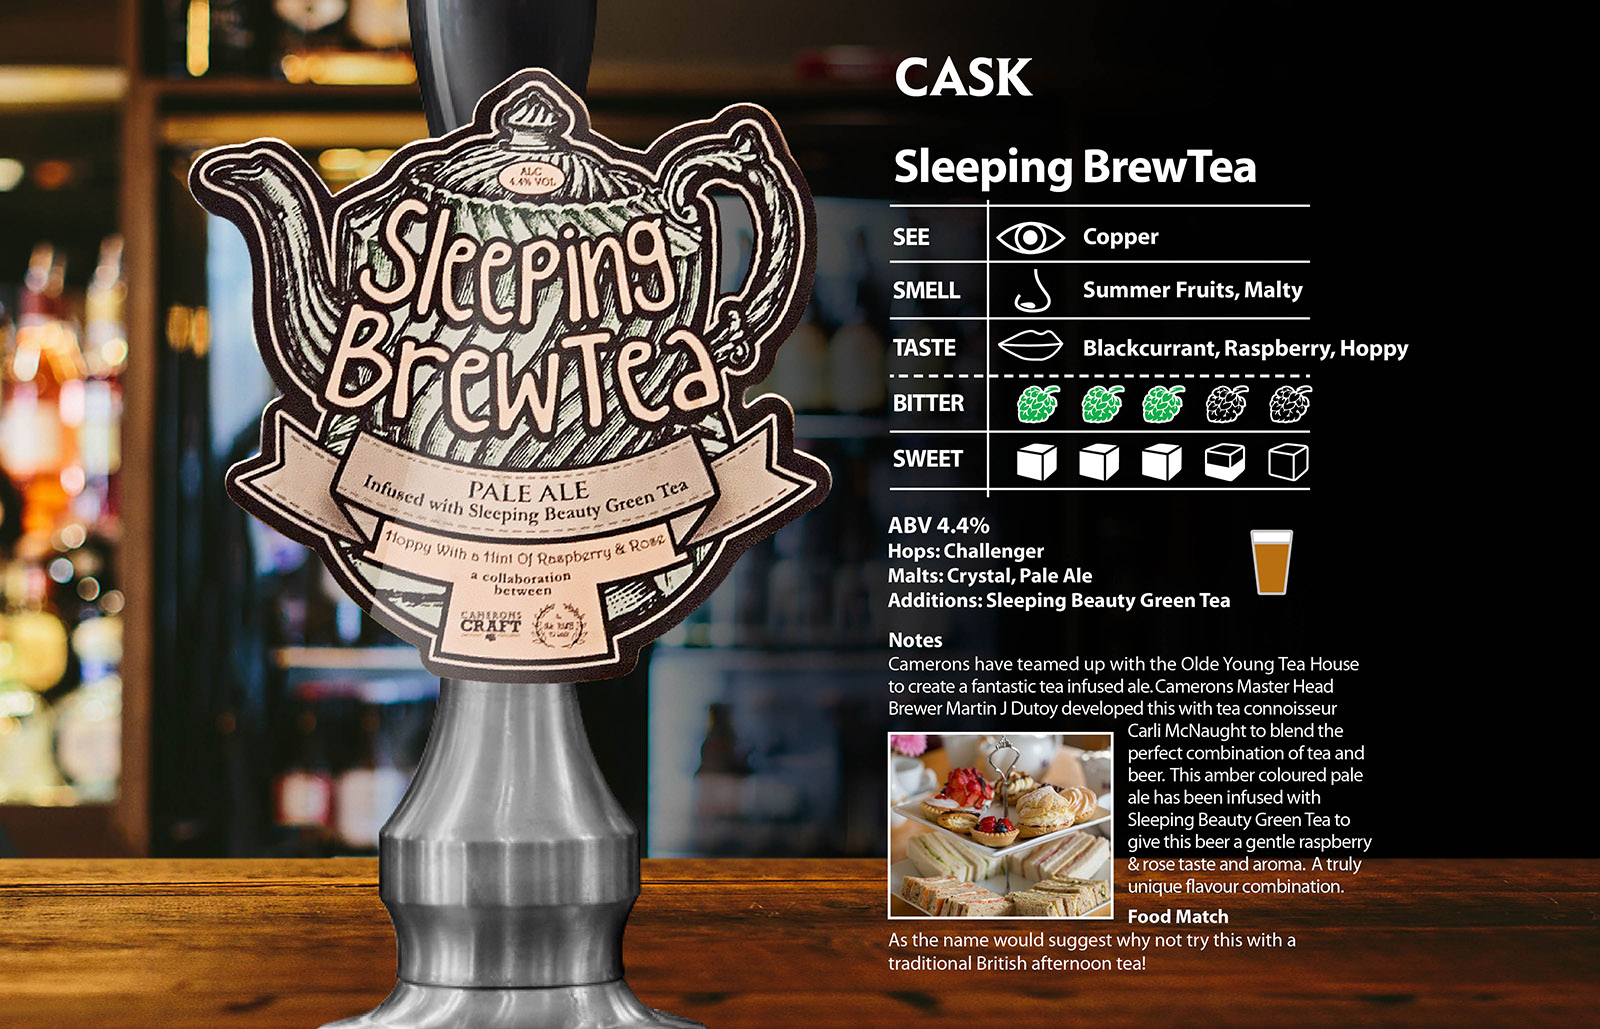 Sleeping brew tea - cask - camerons brewery